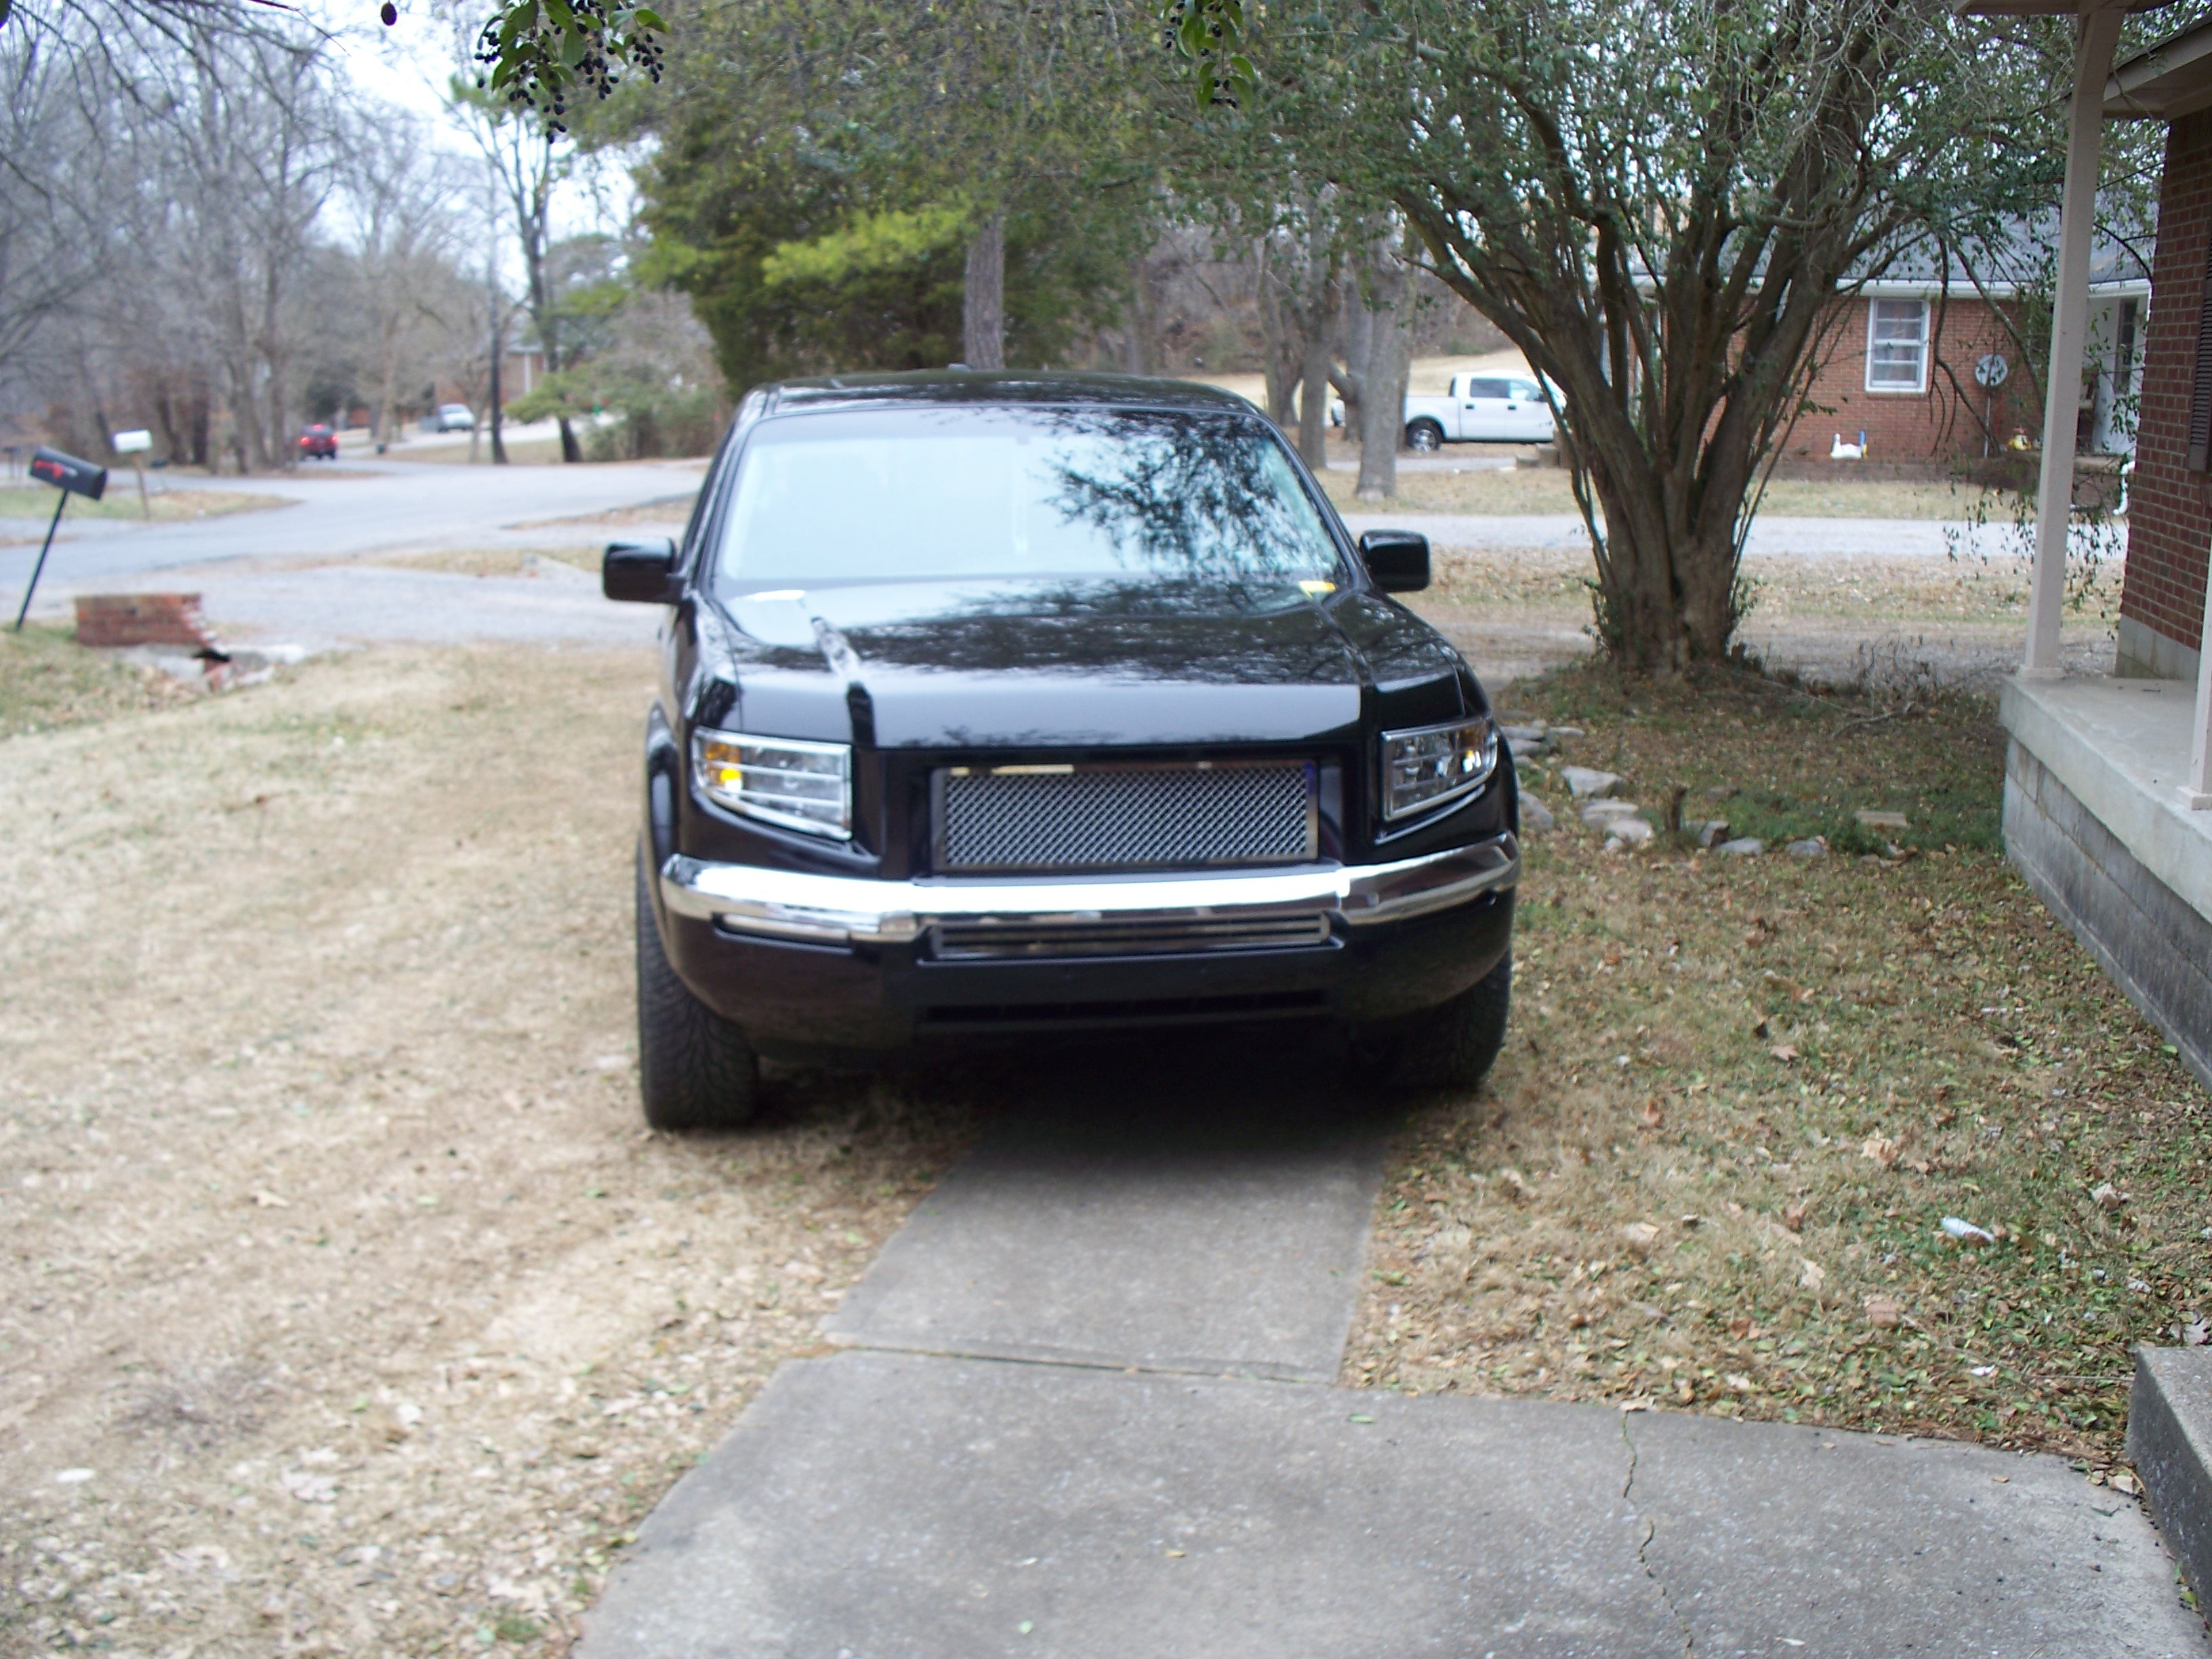 Volkswagen Of Clarksville >> conair44 2007 Honda Ridgeline Specs, Photos, Modification ...